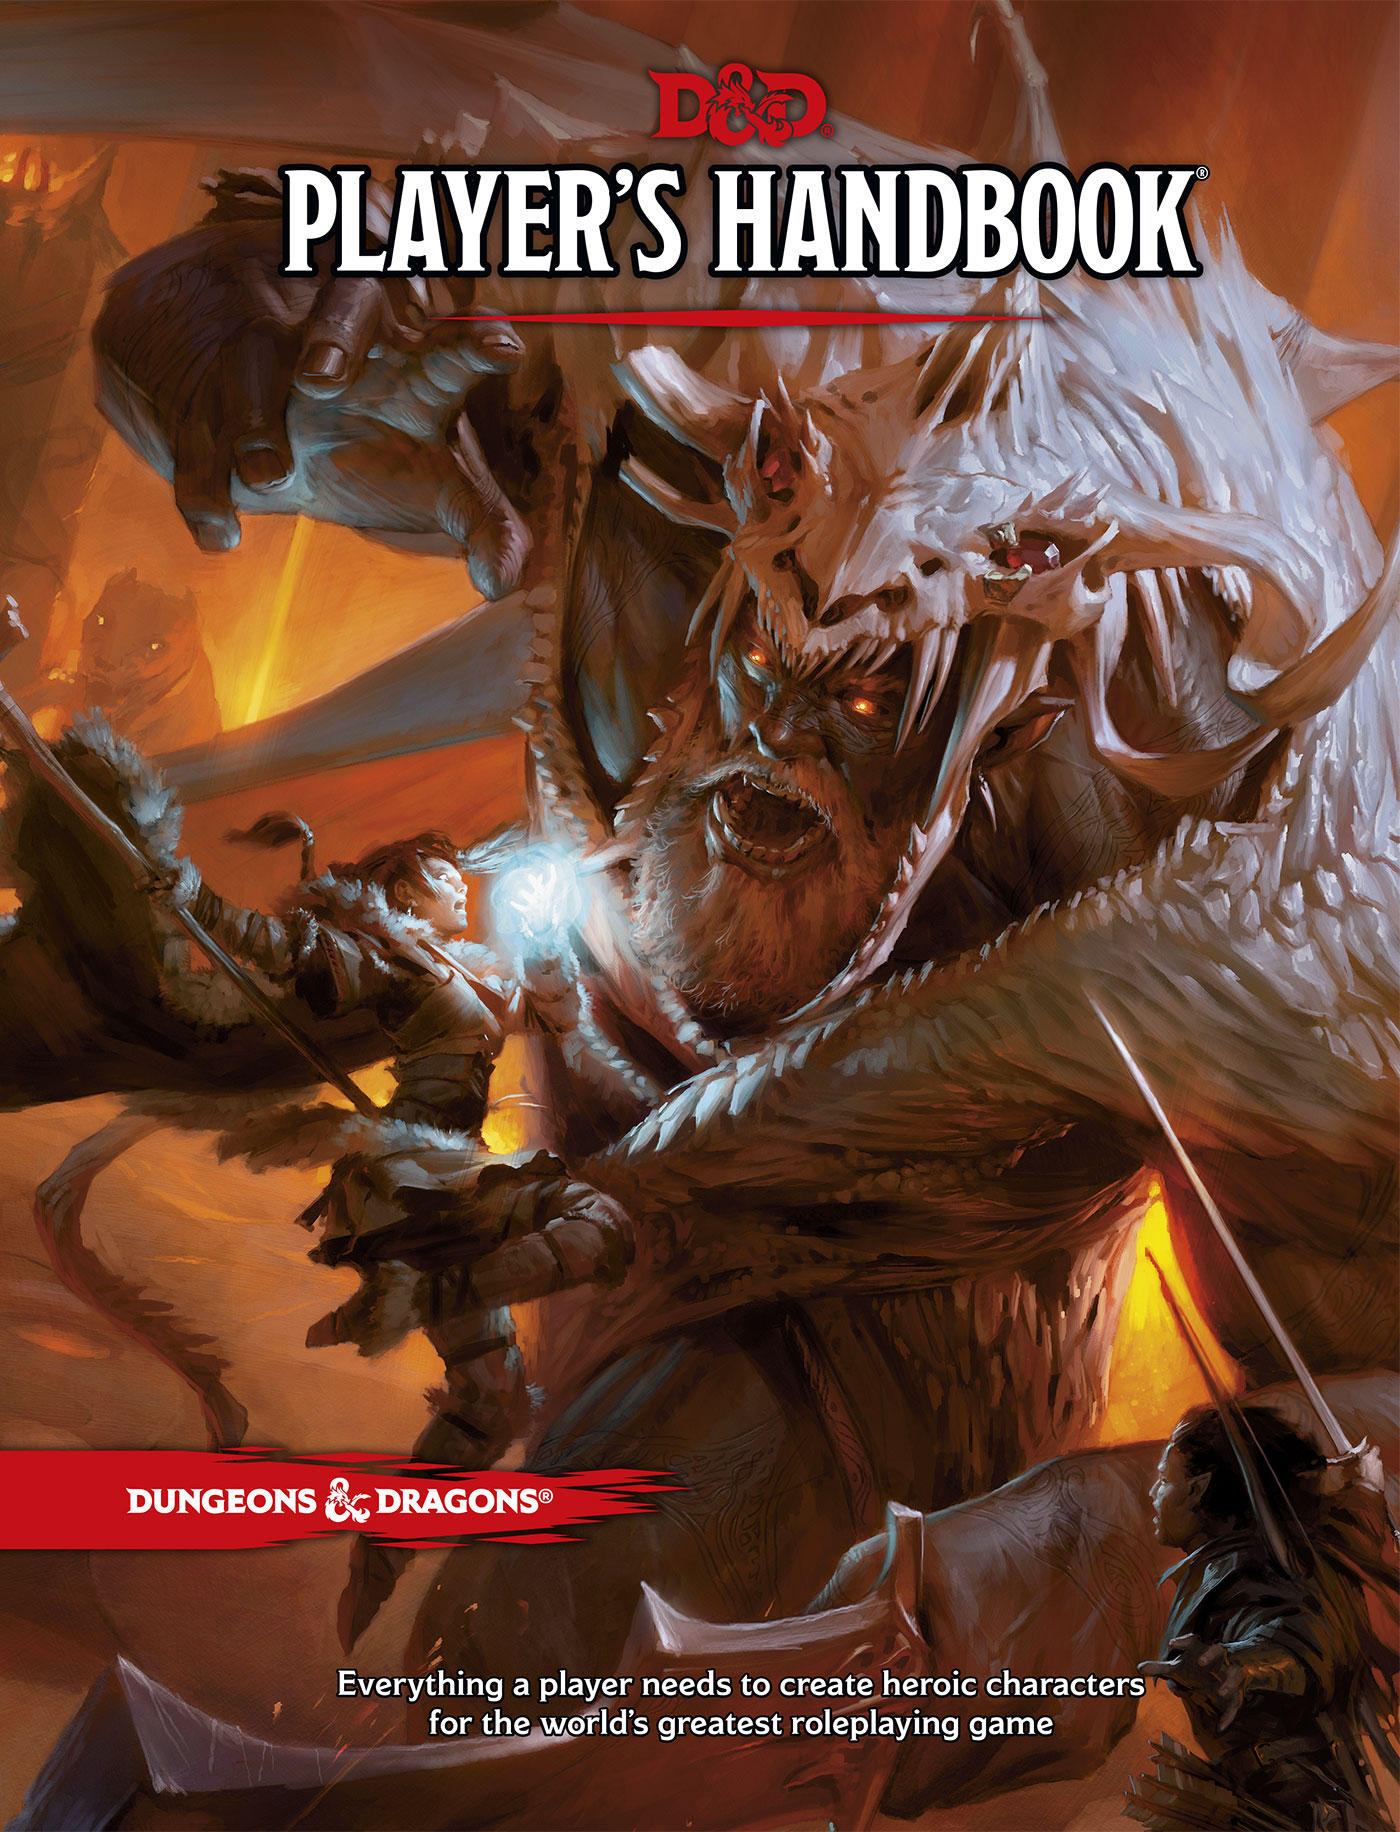 Dungeons & Dragons 5e Players Handbook Wizards of the Coast 2014